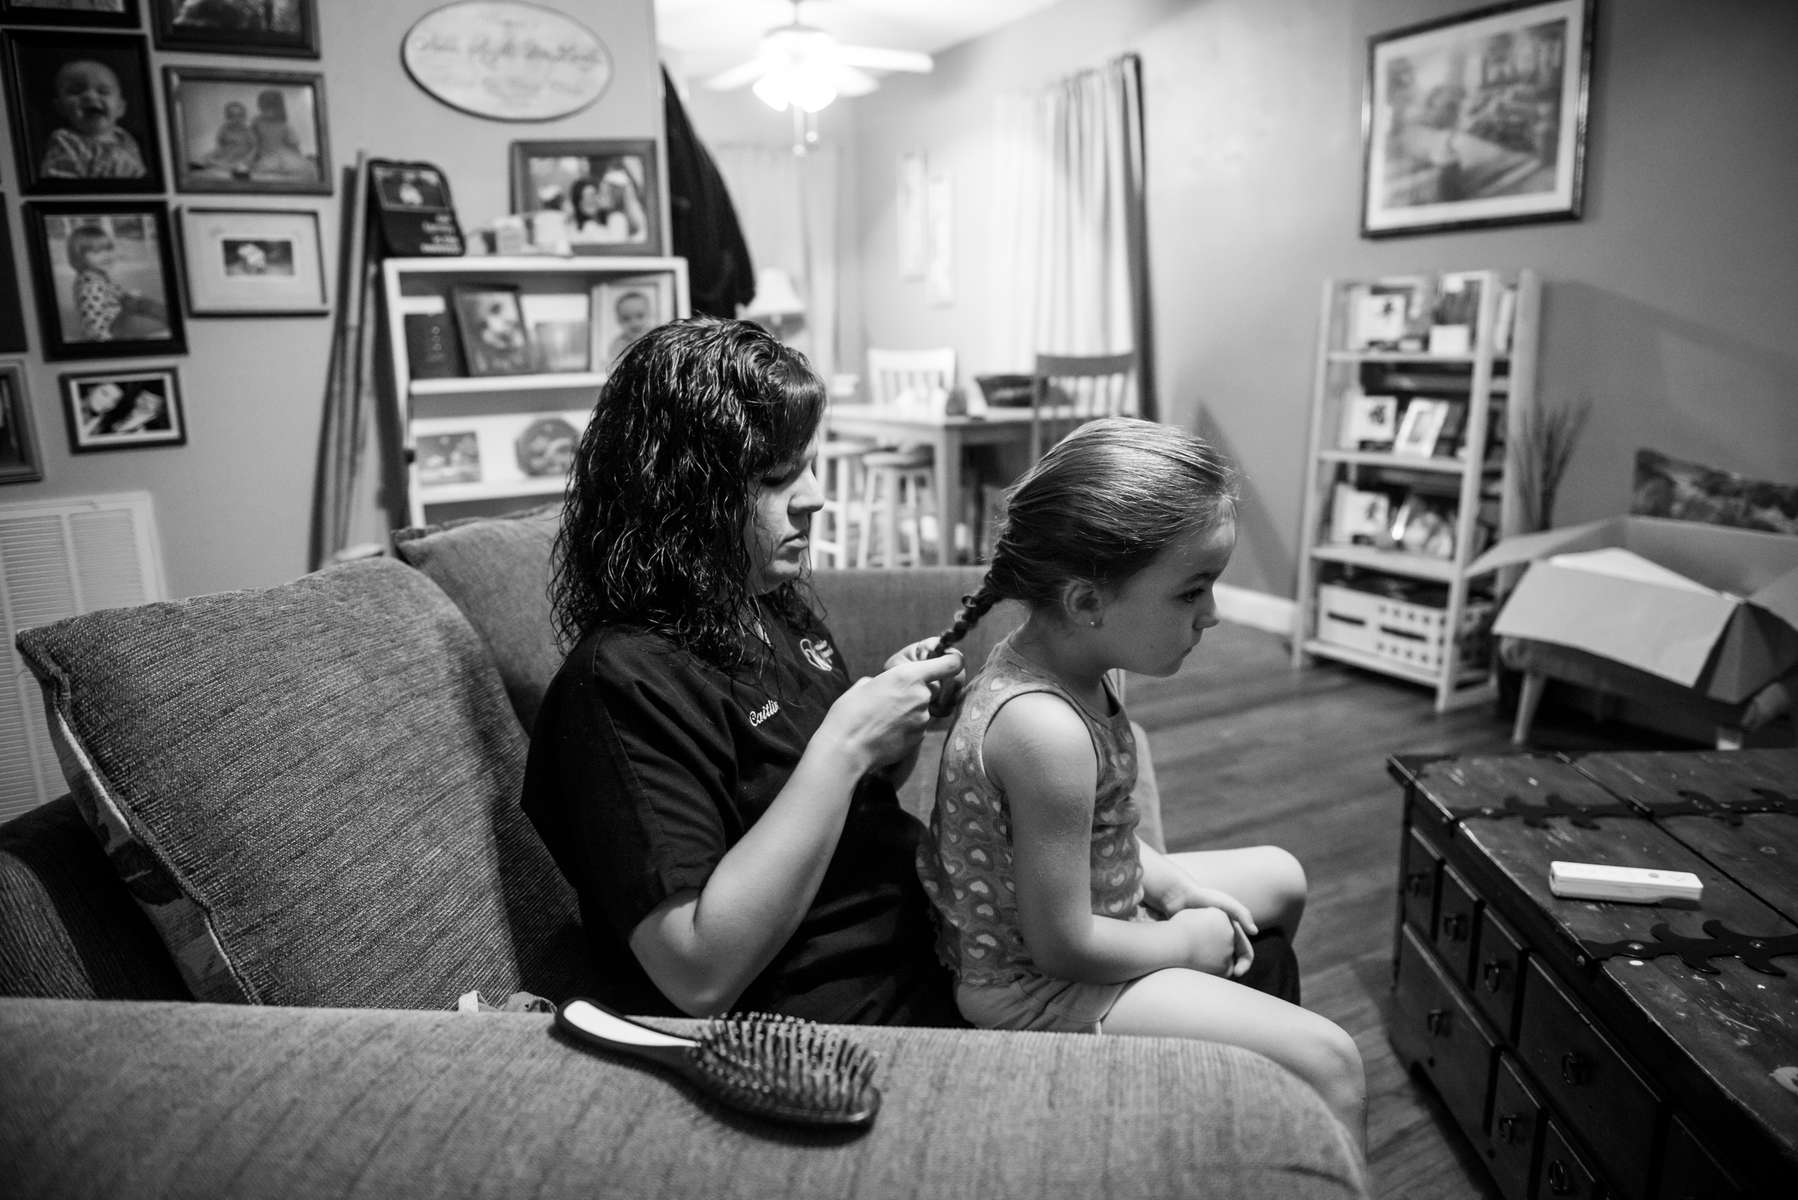 Caitlin Bell fixing daughter Kessler McCarver's hair before they leave the house in the morning on August 21. 2013 in Chattanooga, TN.